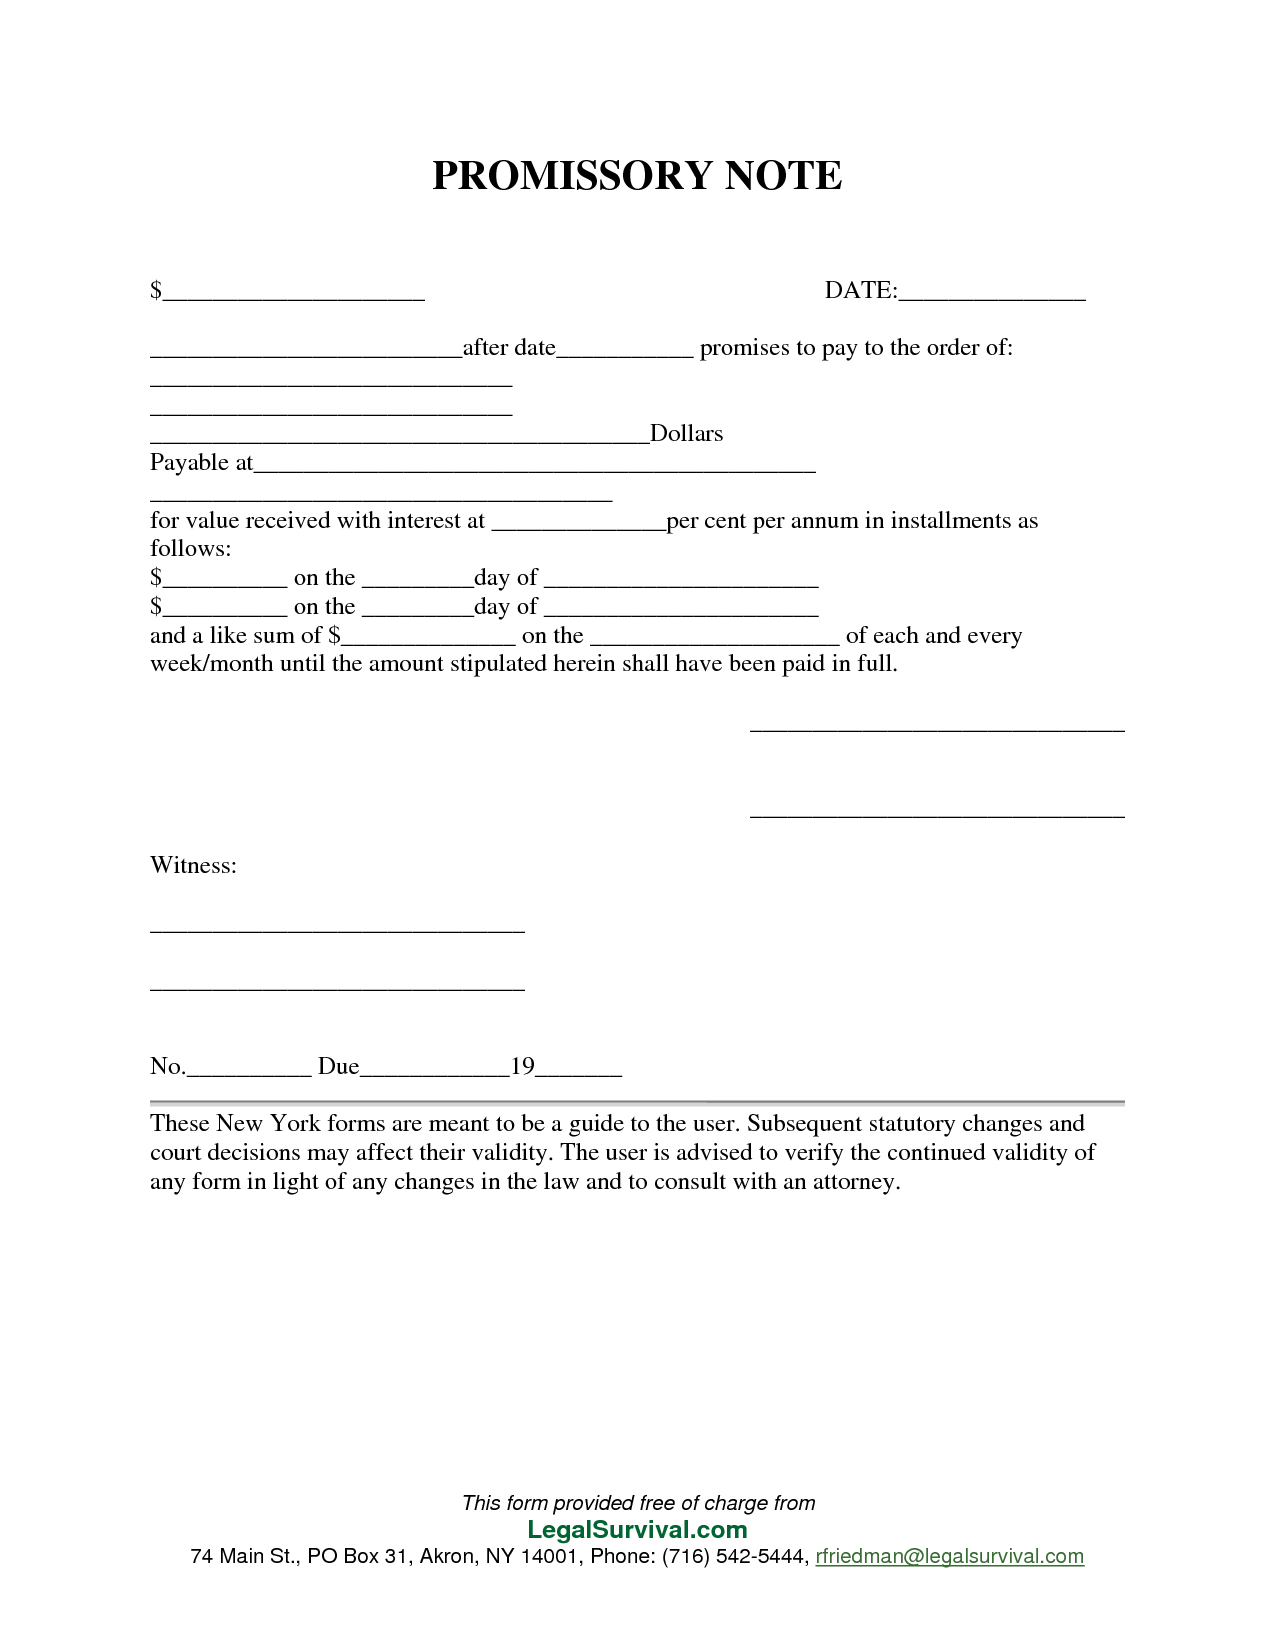 Permalink To Free Promissory Note Template | Templates, Printables - Free Printable Promissory Note Template